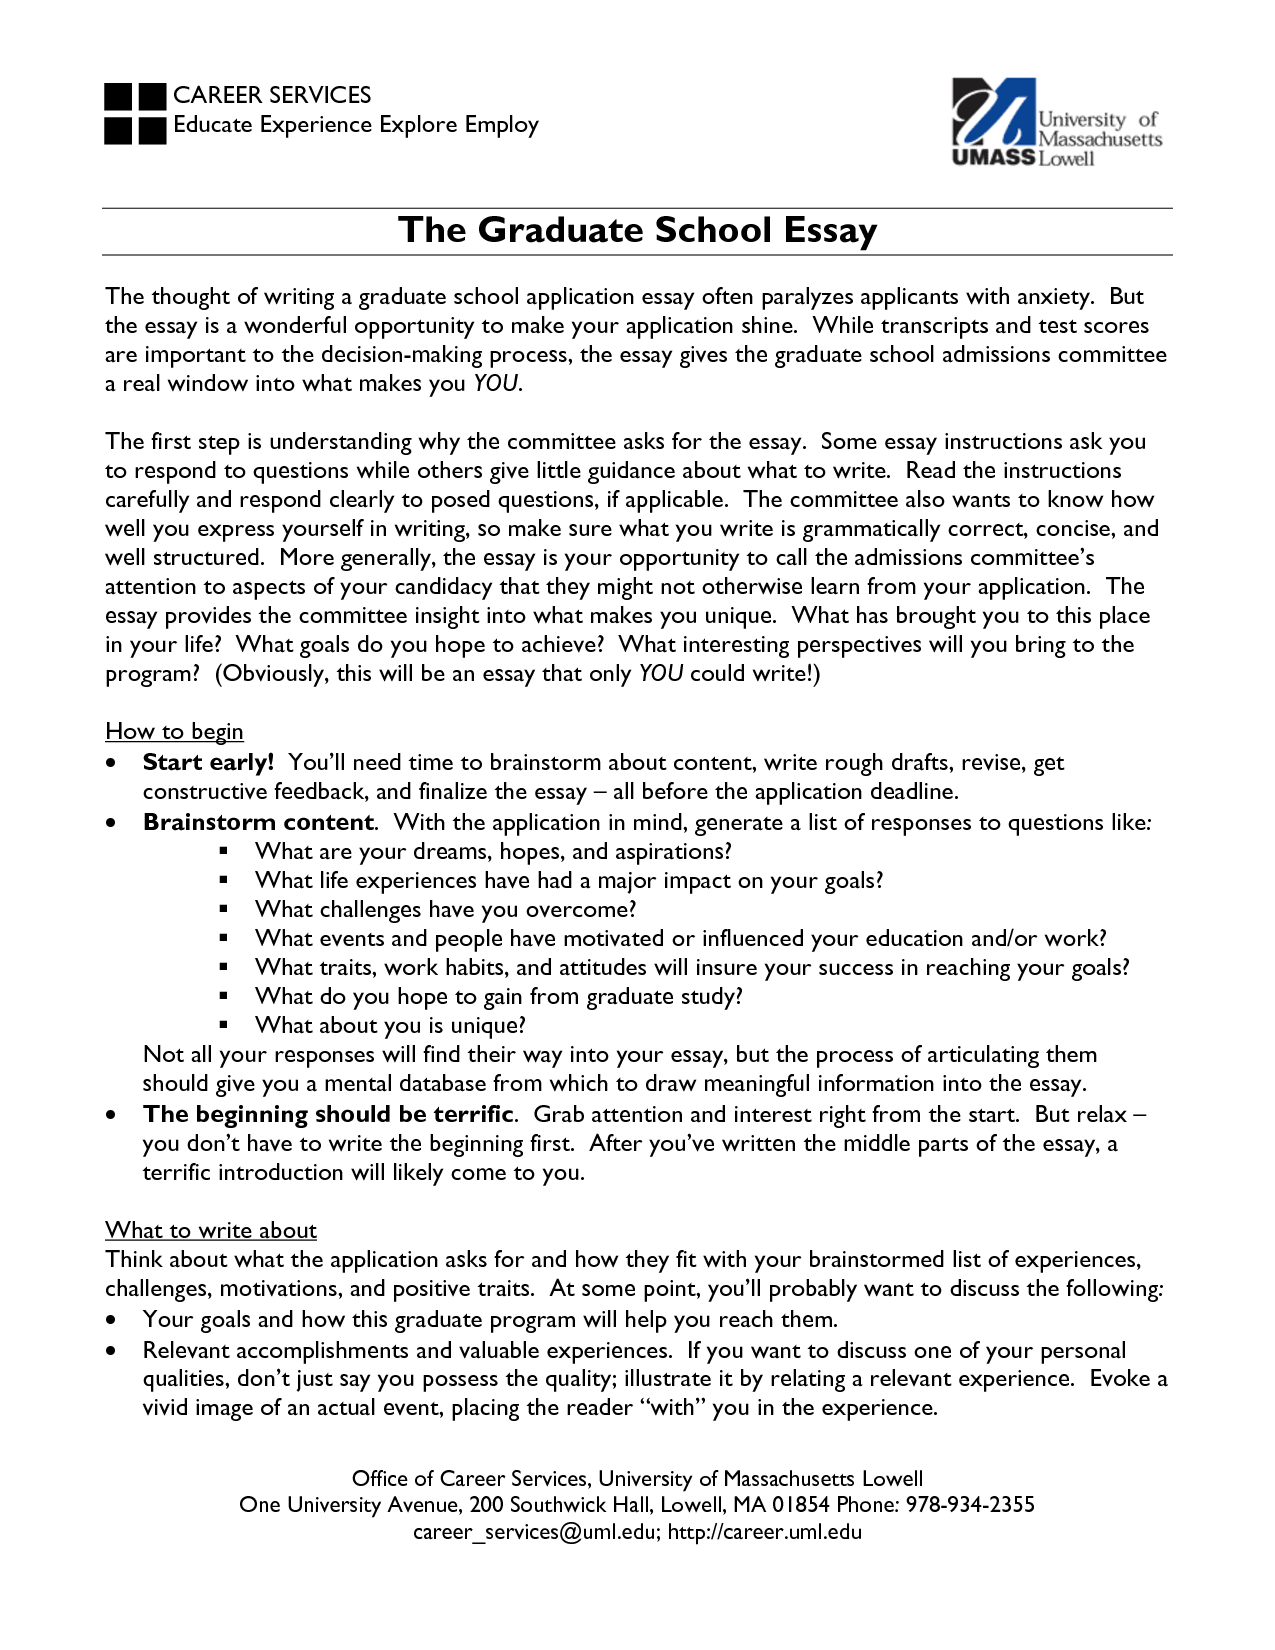 an admission essay for graduate school Sample nursing admission essays nursing admission essays for graduate school short term goals to become a nurse fundamentals of nursing kozier pdf.